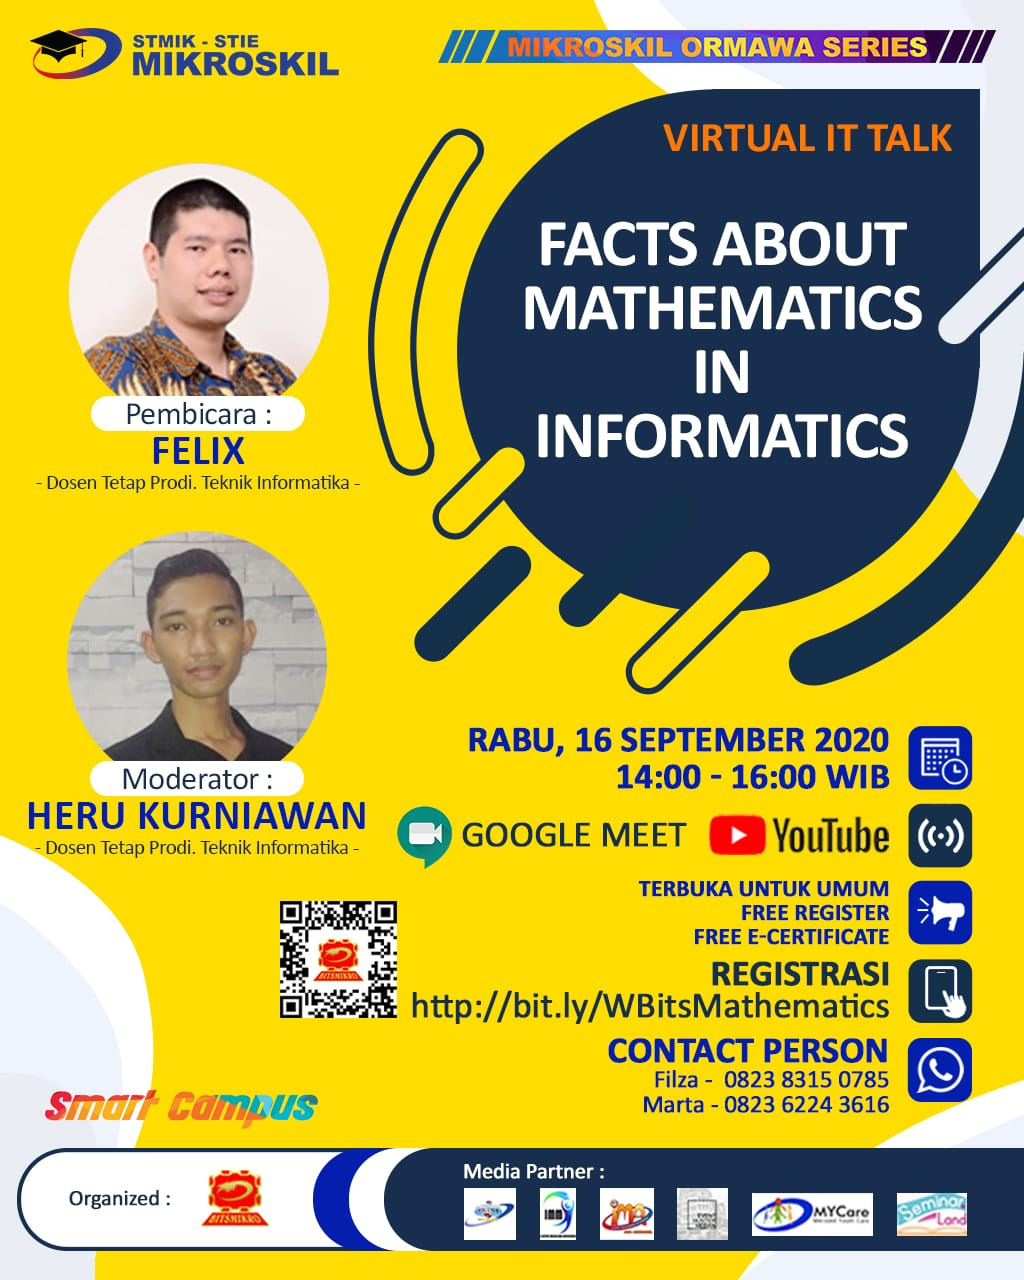 Poster: Facts About Mathematics in Informatics